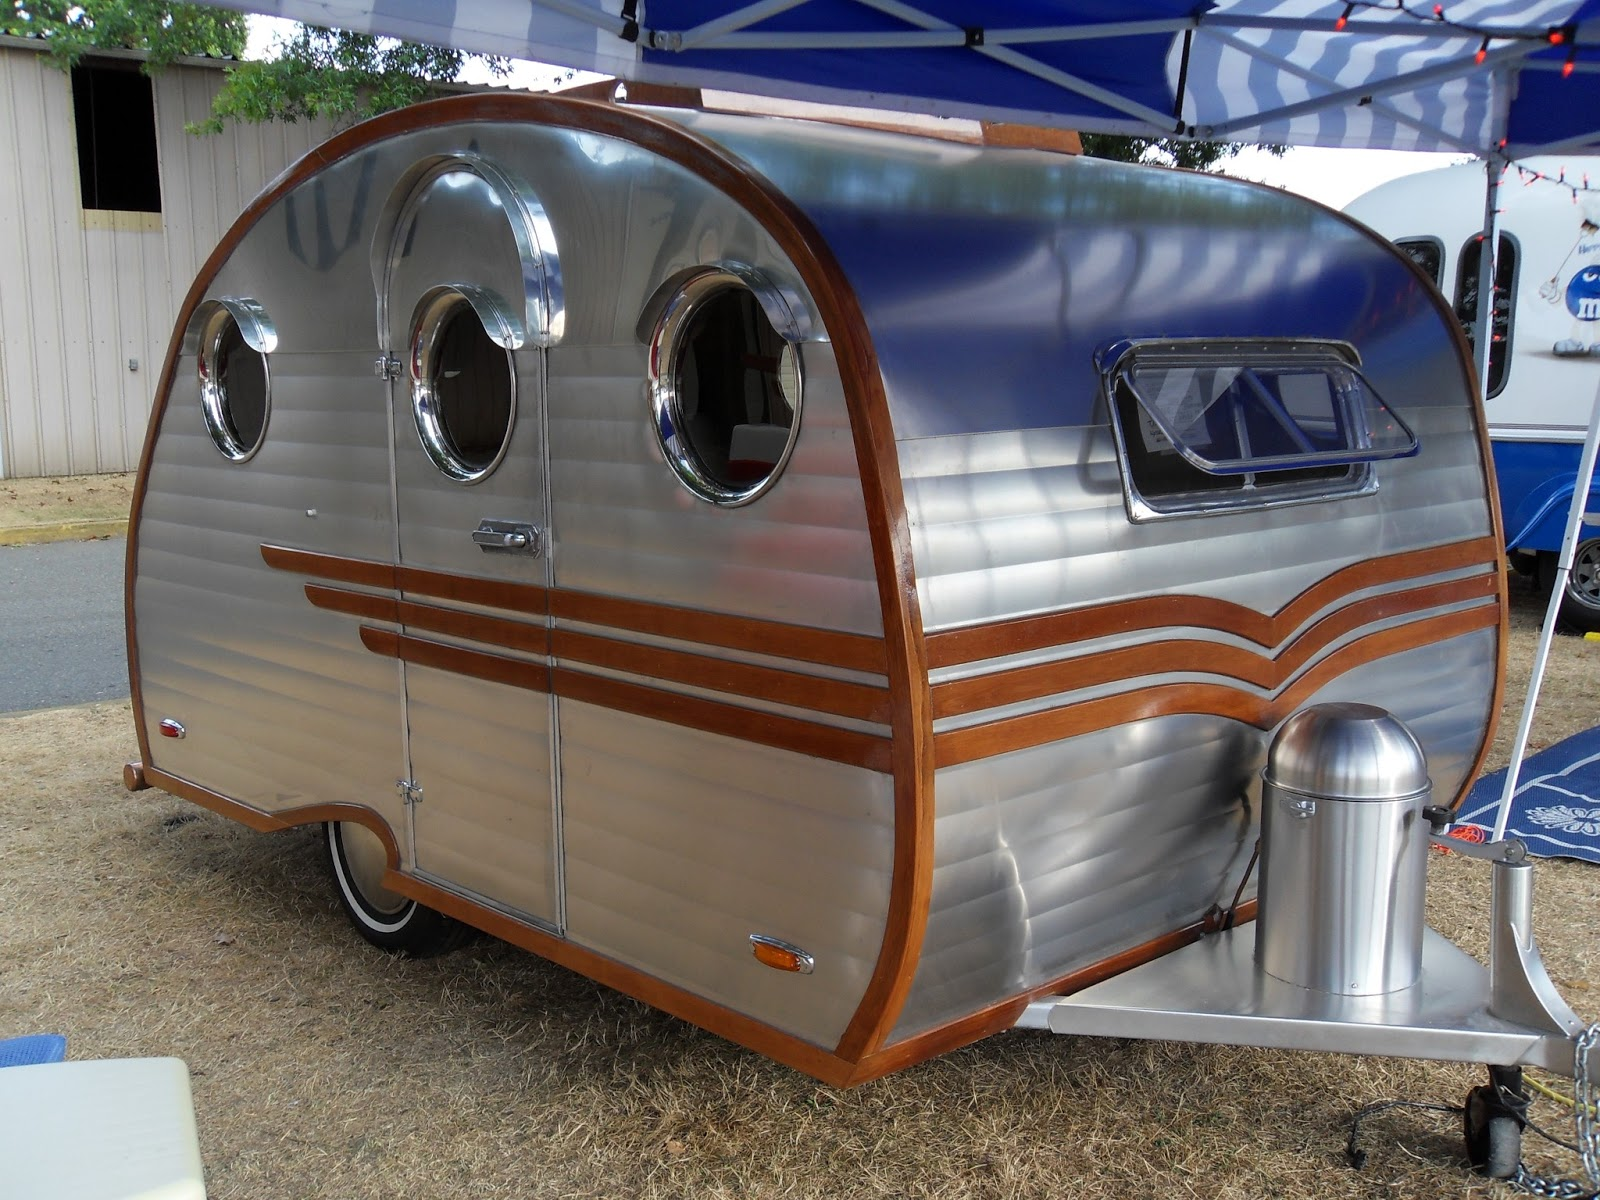 Scotty campers vintage submited images